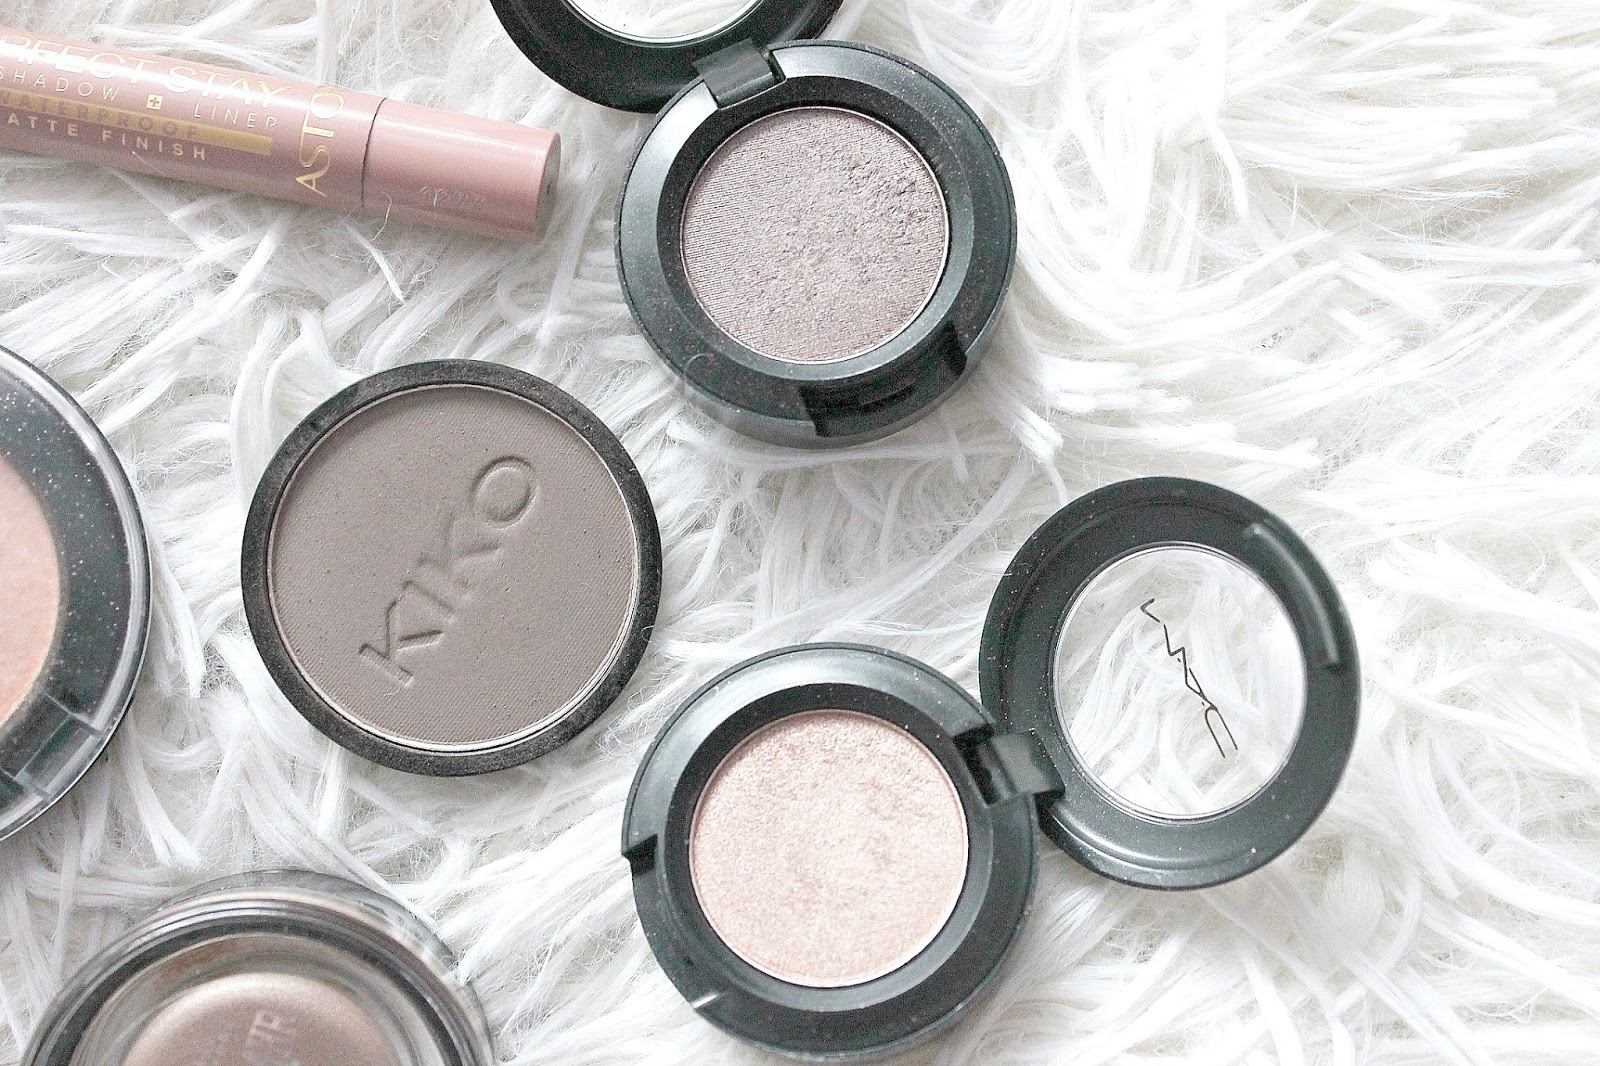 MAC & KIKO eyeshadow